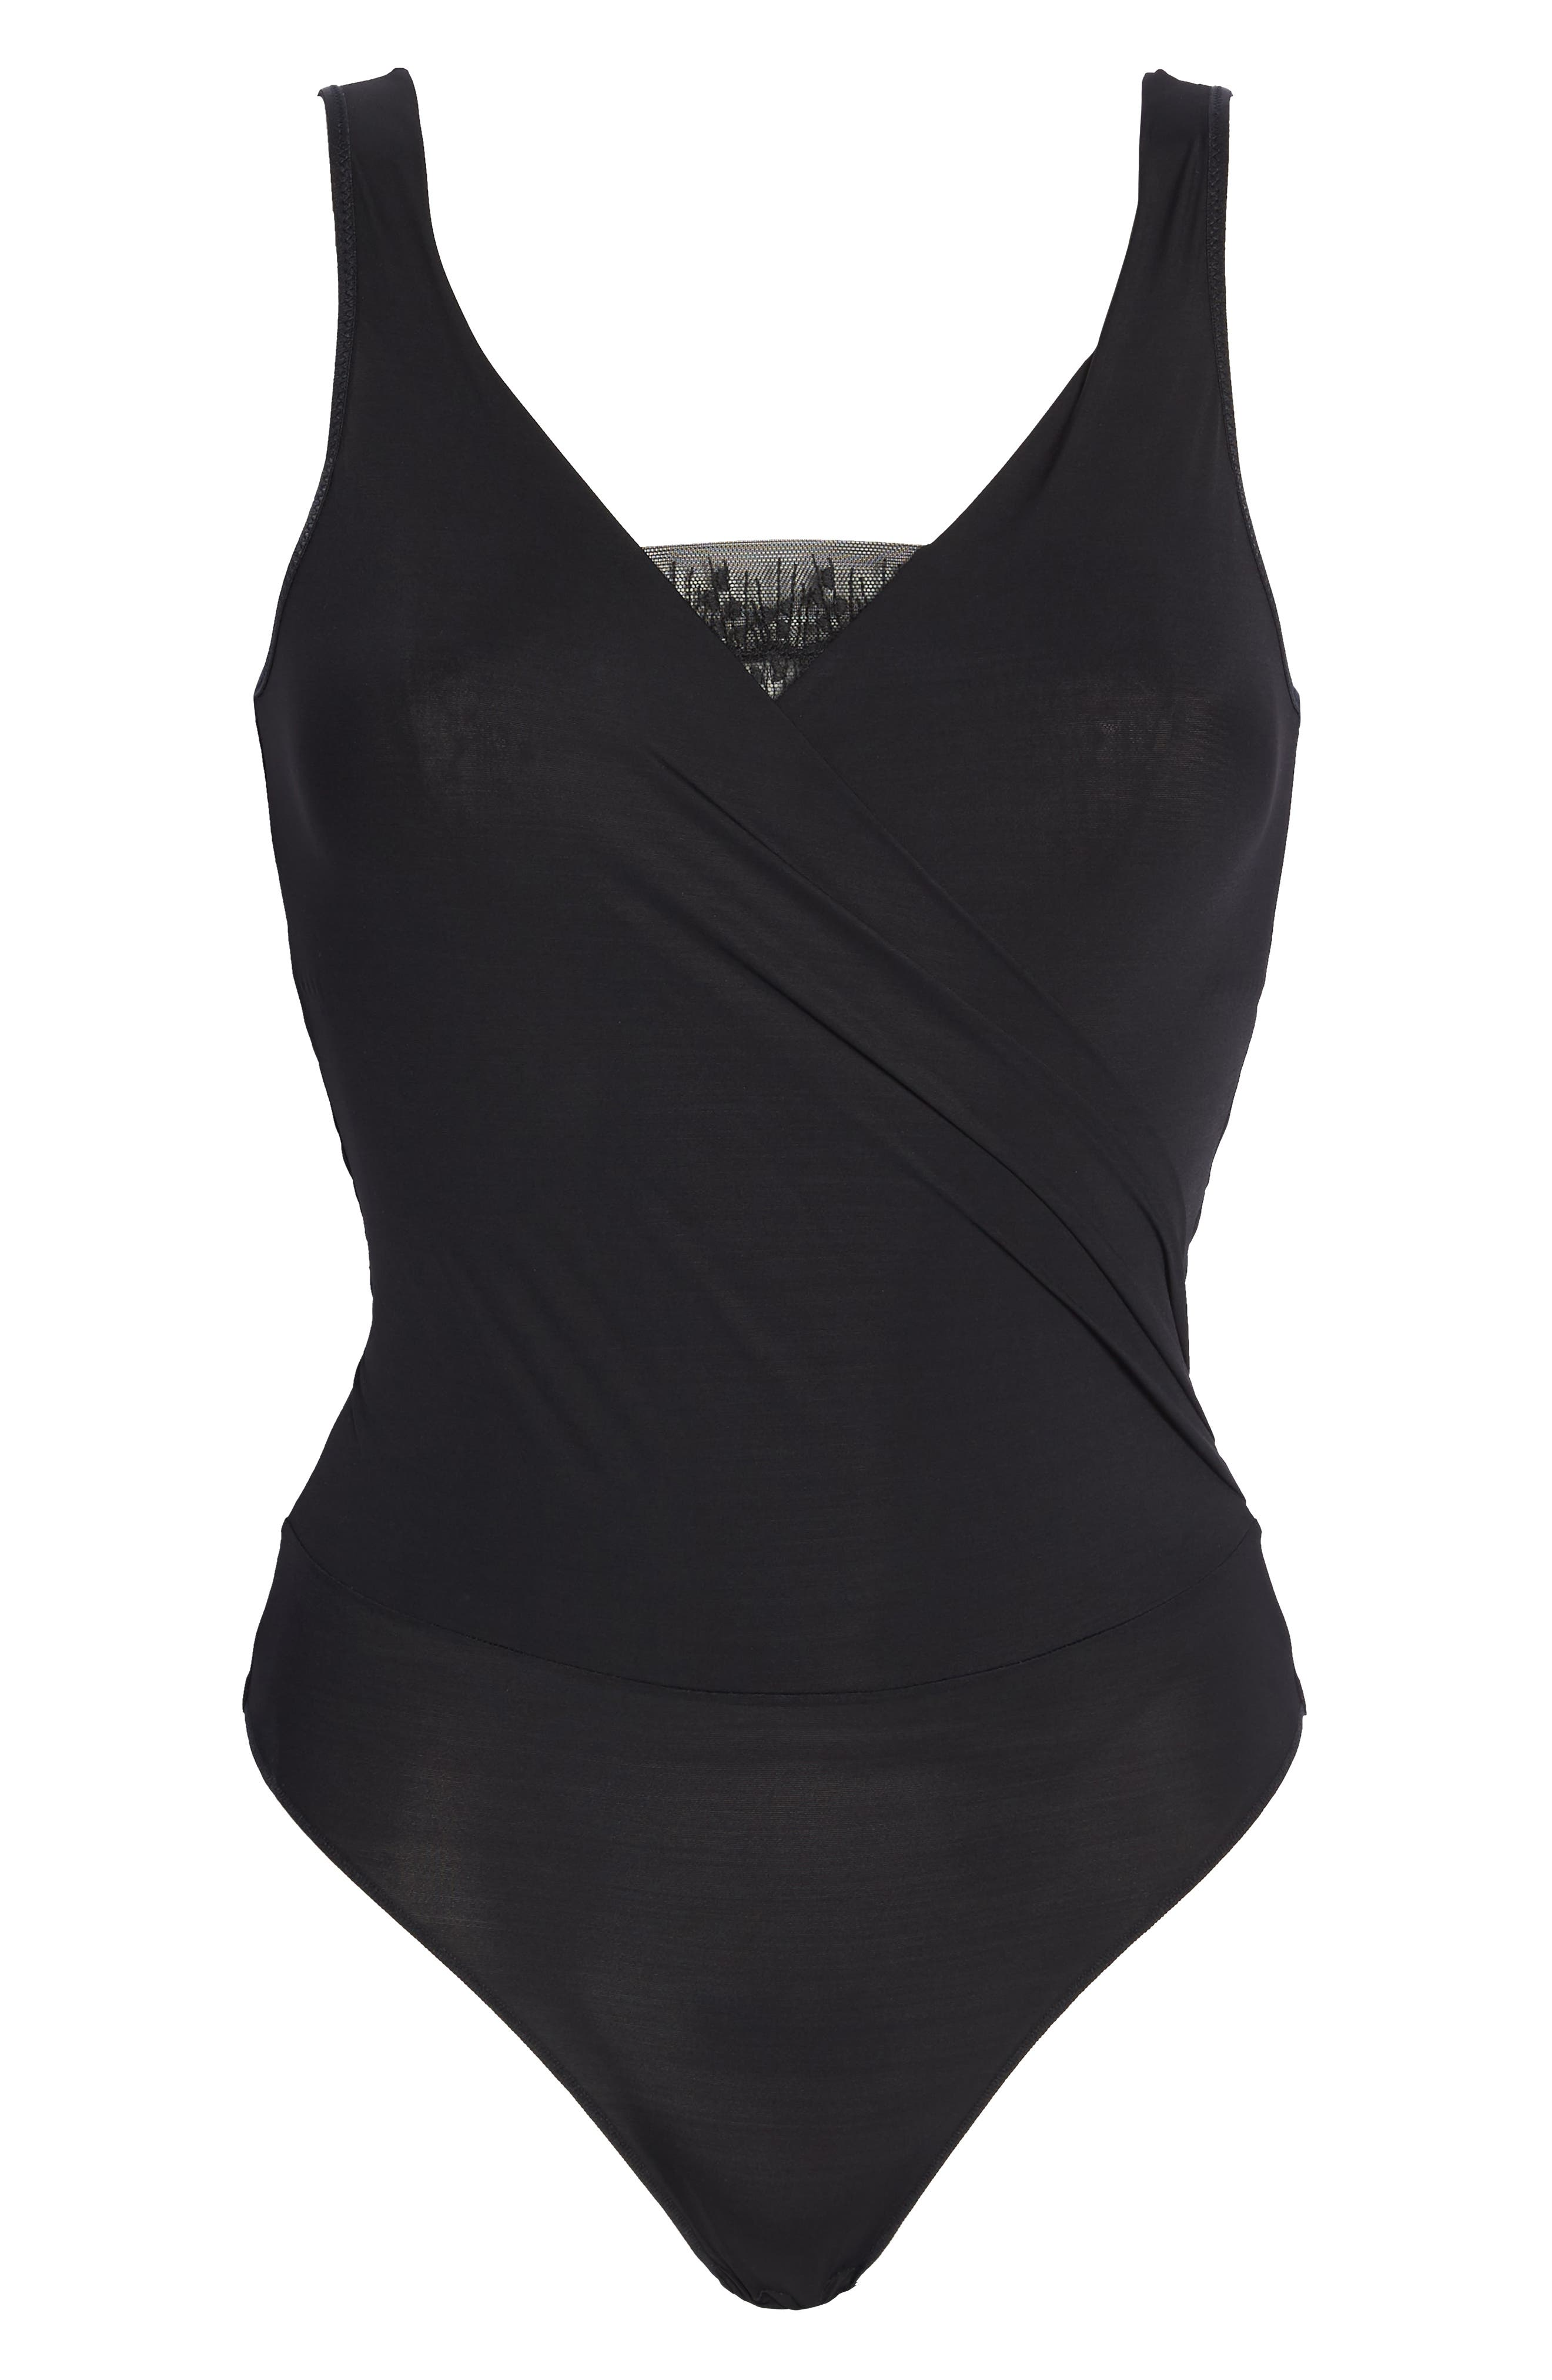 Imprevue Bodysuit,                             Alternate thumbnail 6, color,                             001